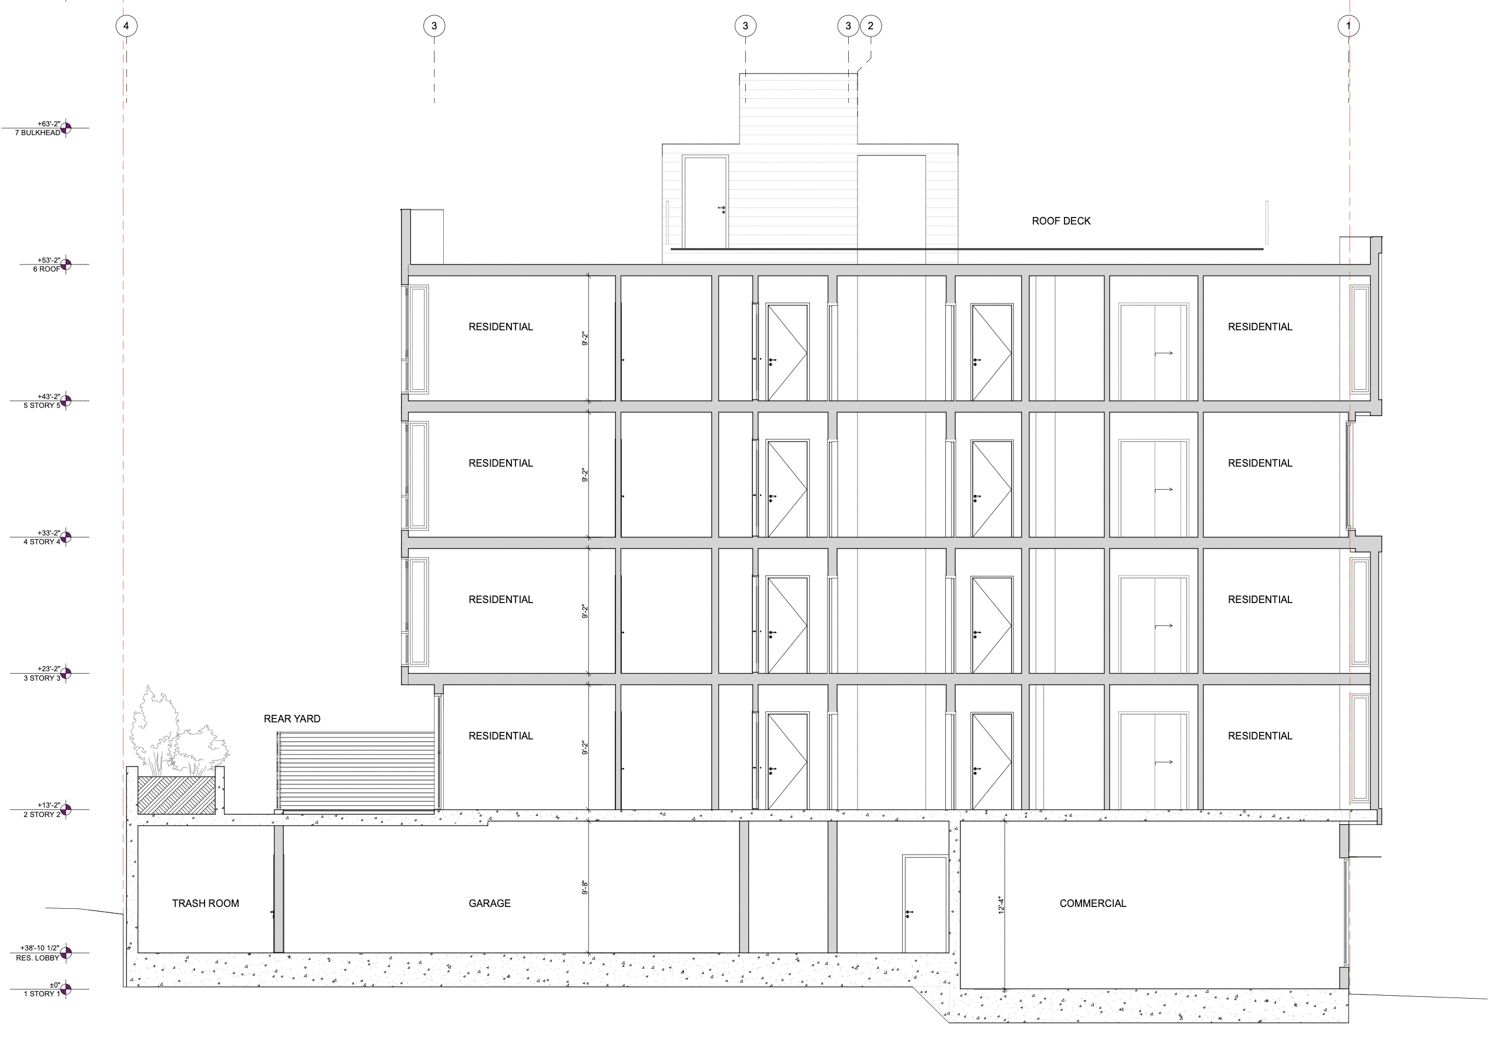 198 Valencia Street cross-section, elevation by RG Architecture